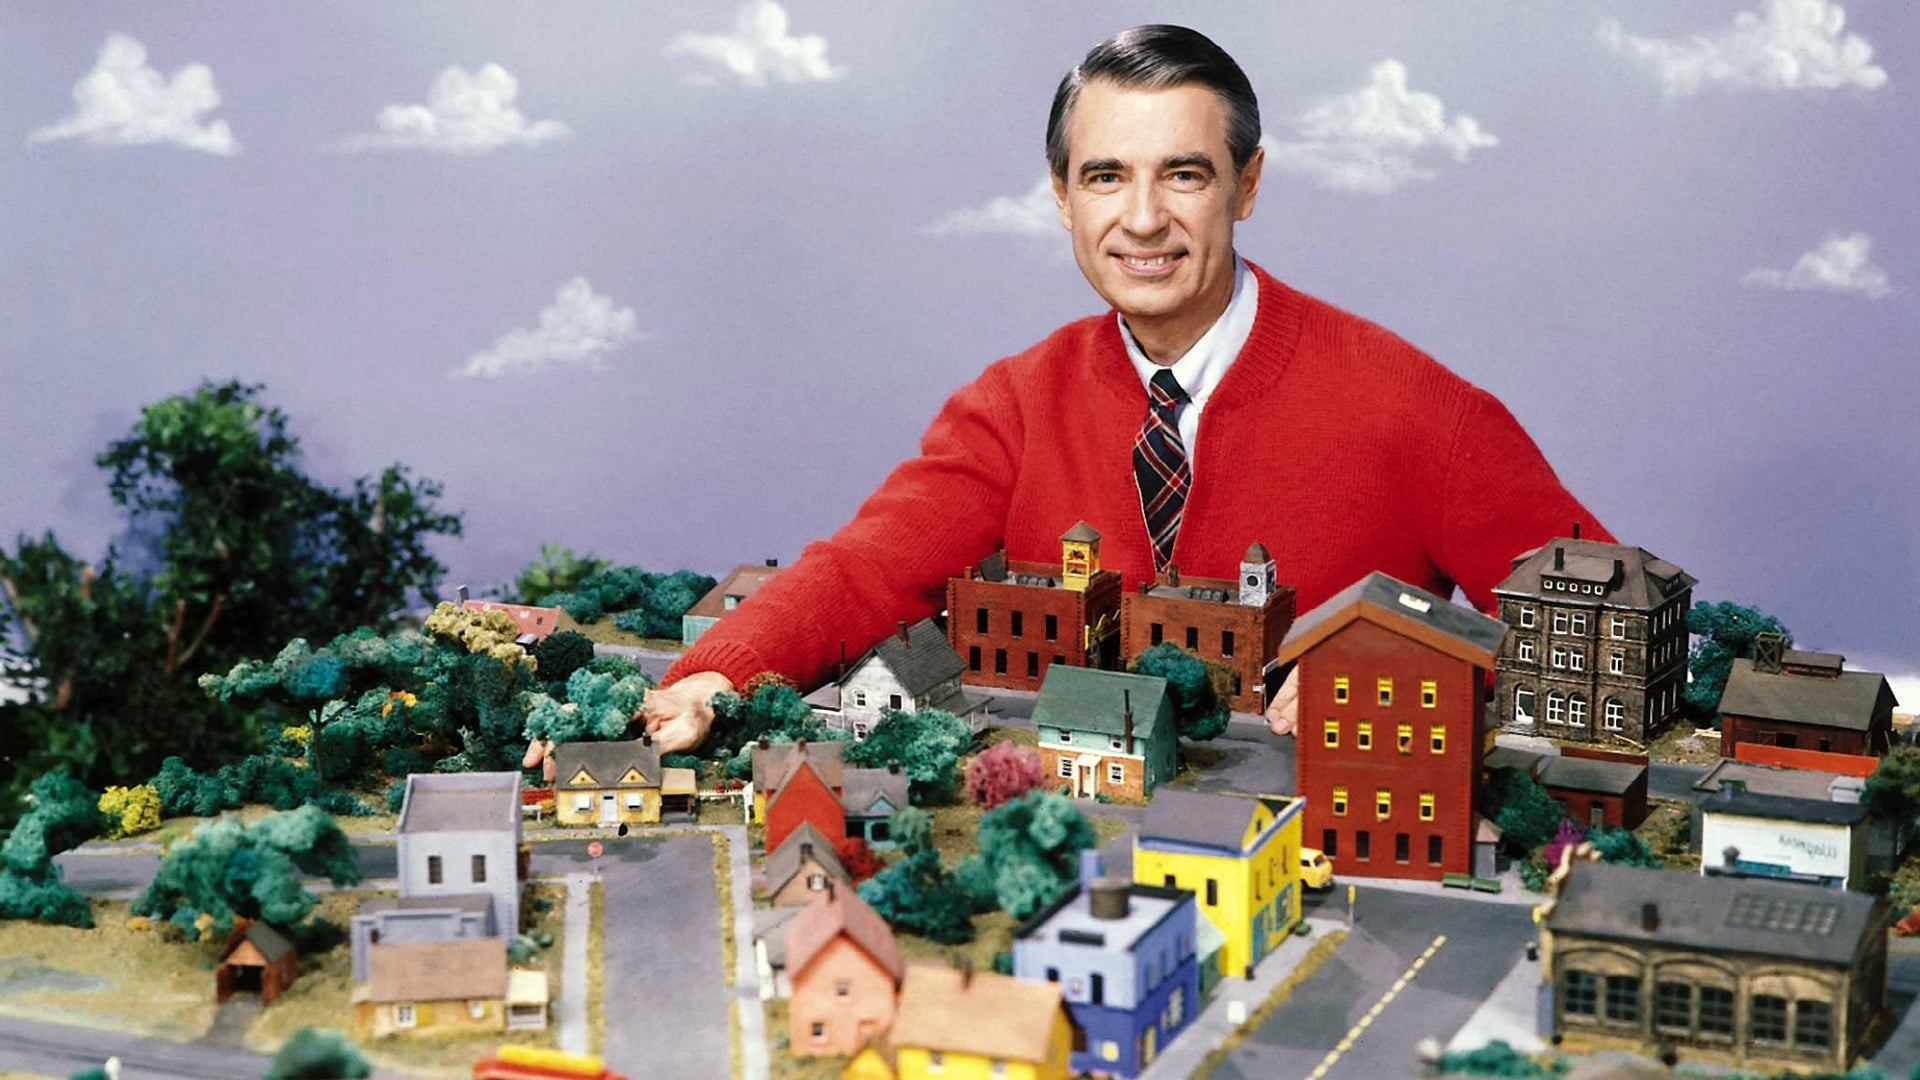 Mister Rogers Neighborhood Vol 1 Wiki Synopsis Reviews Movies Rankings